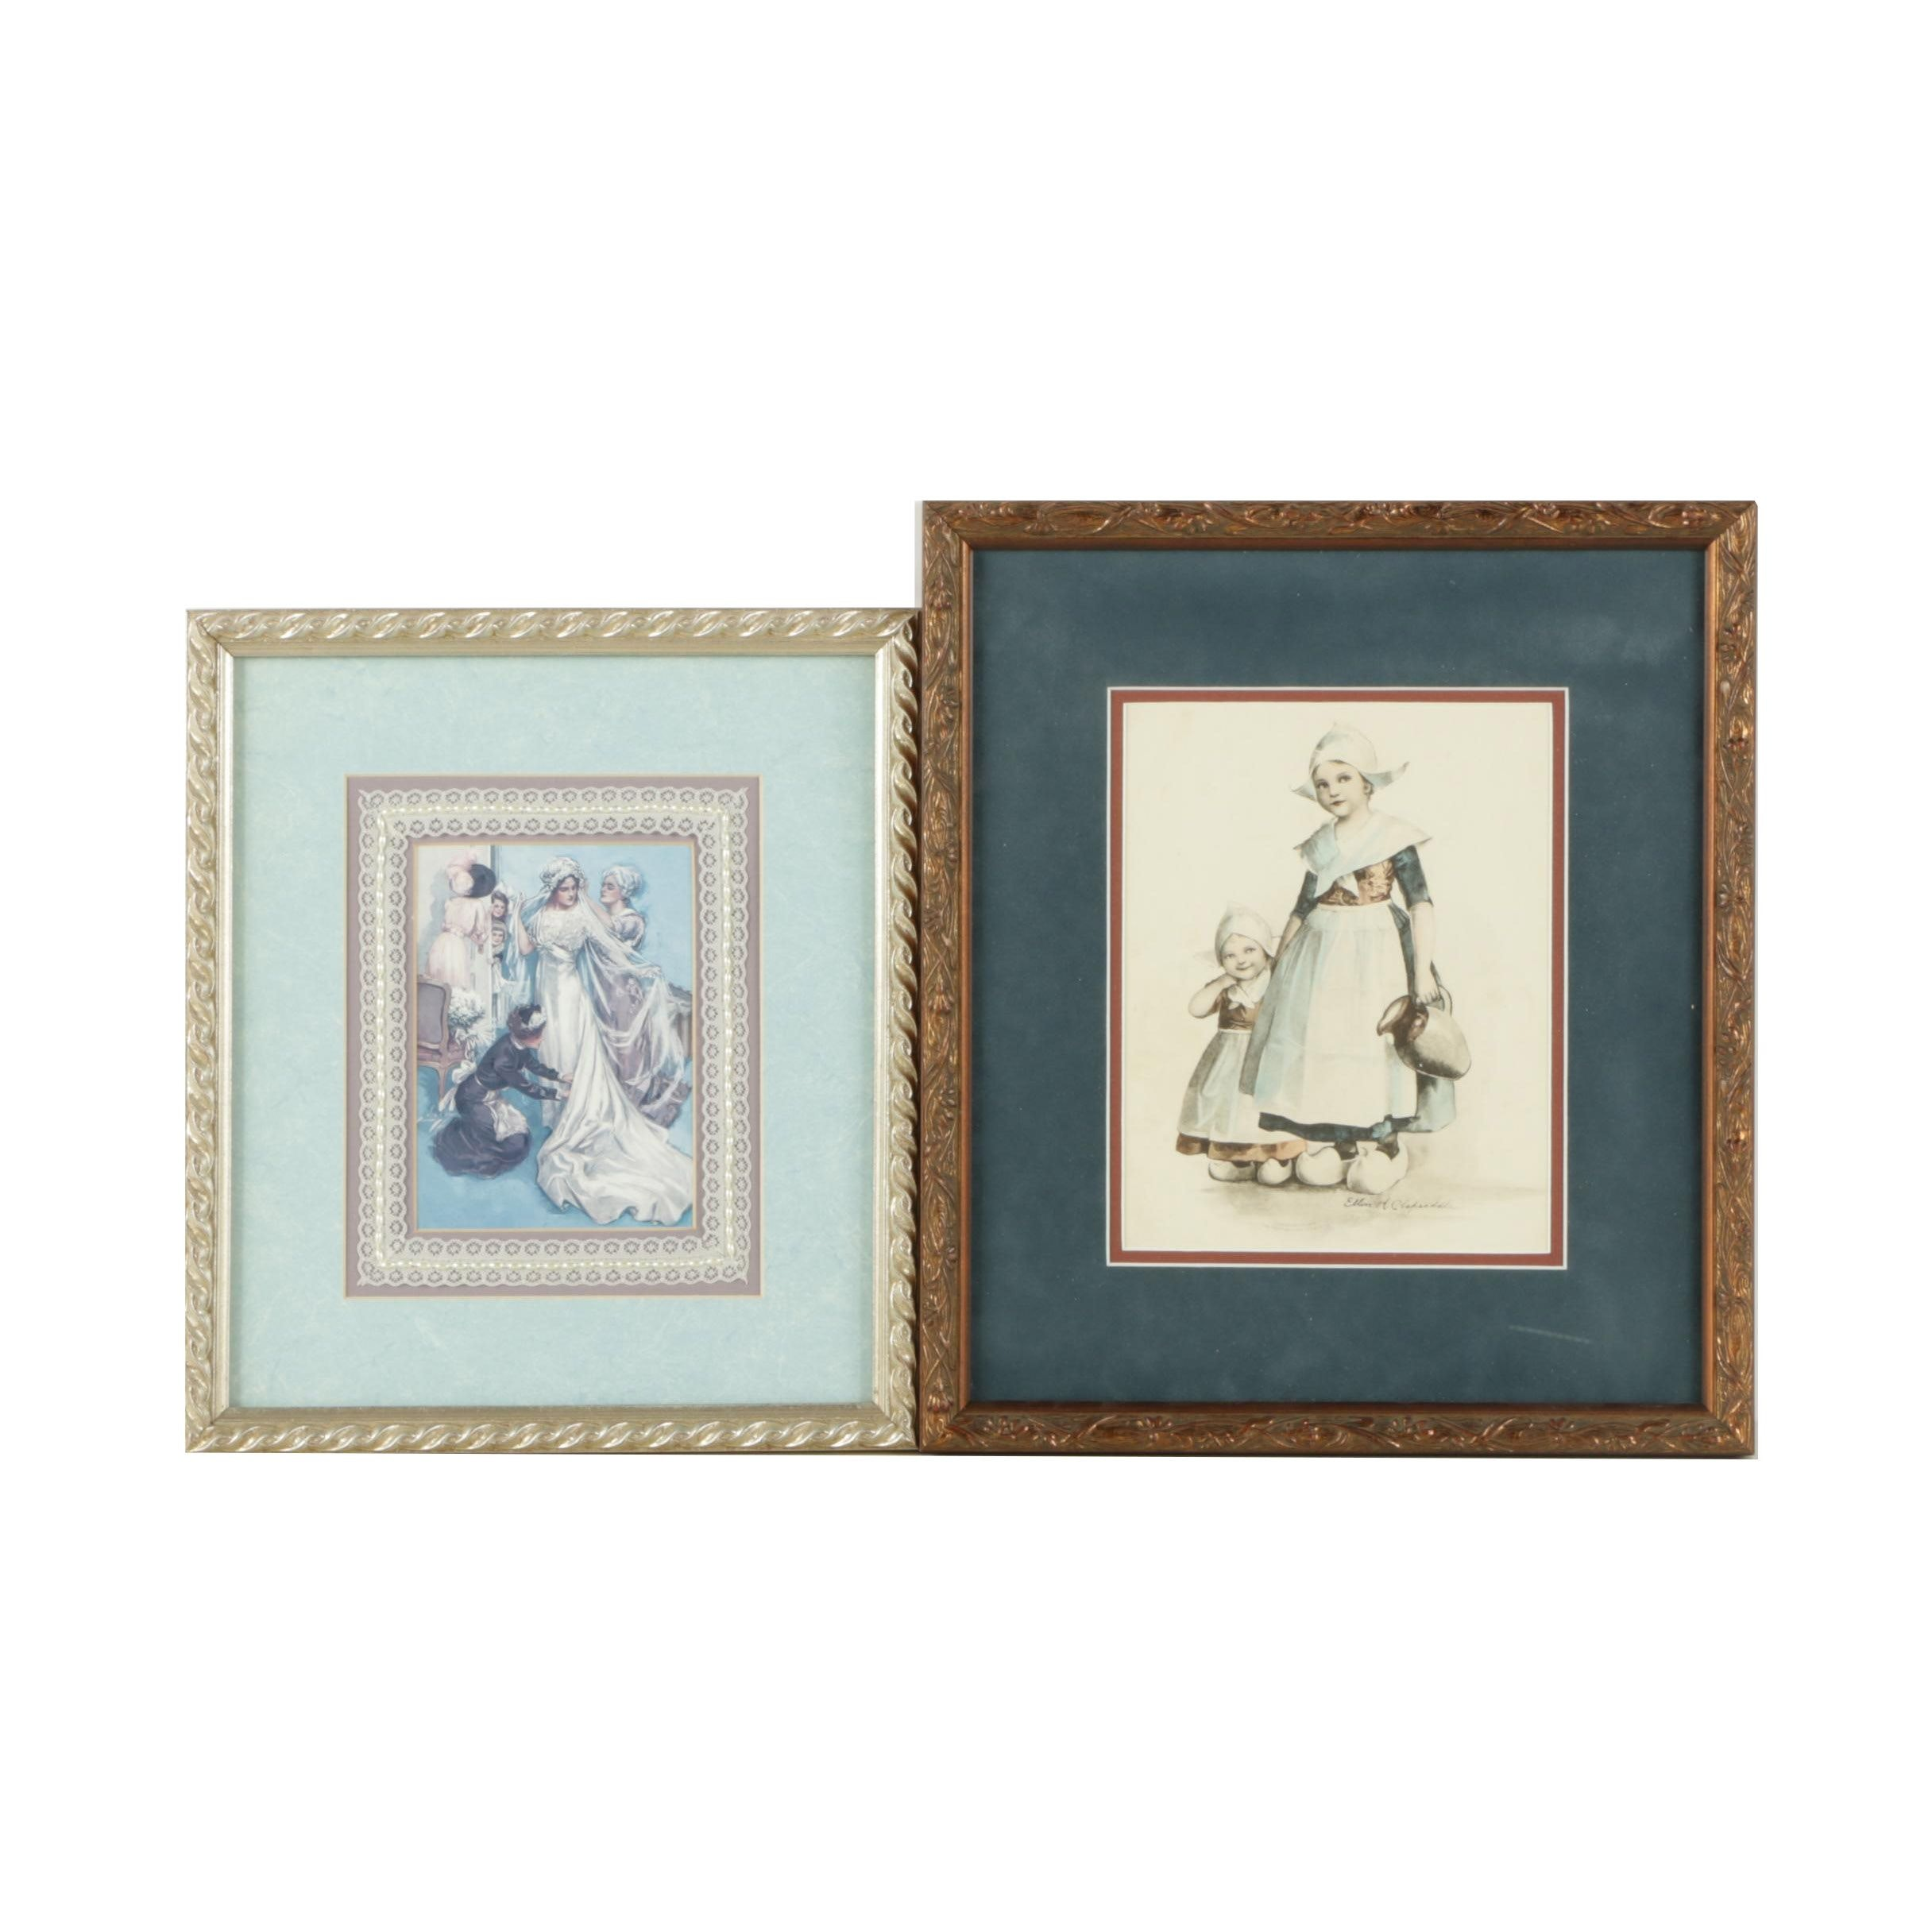 Reproduction Prints After Illustrations by Ellen Clapsaddle and Harrison Fisher